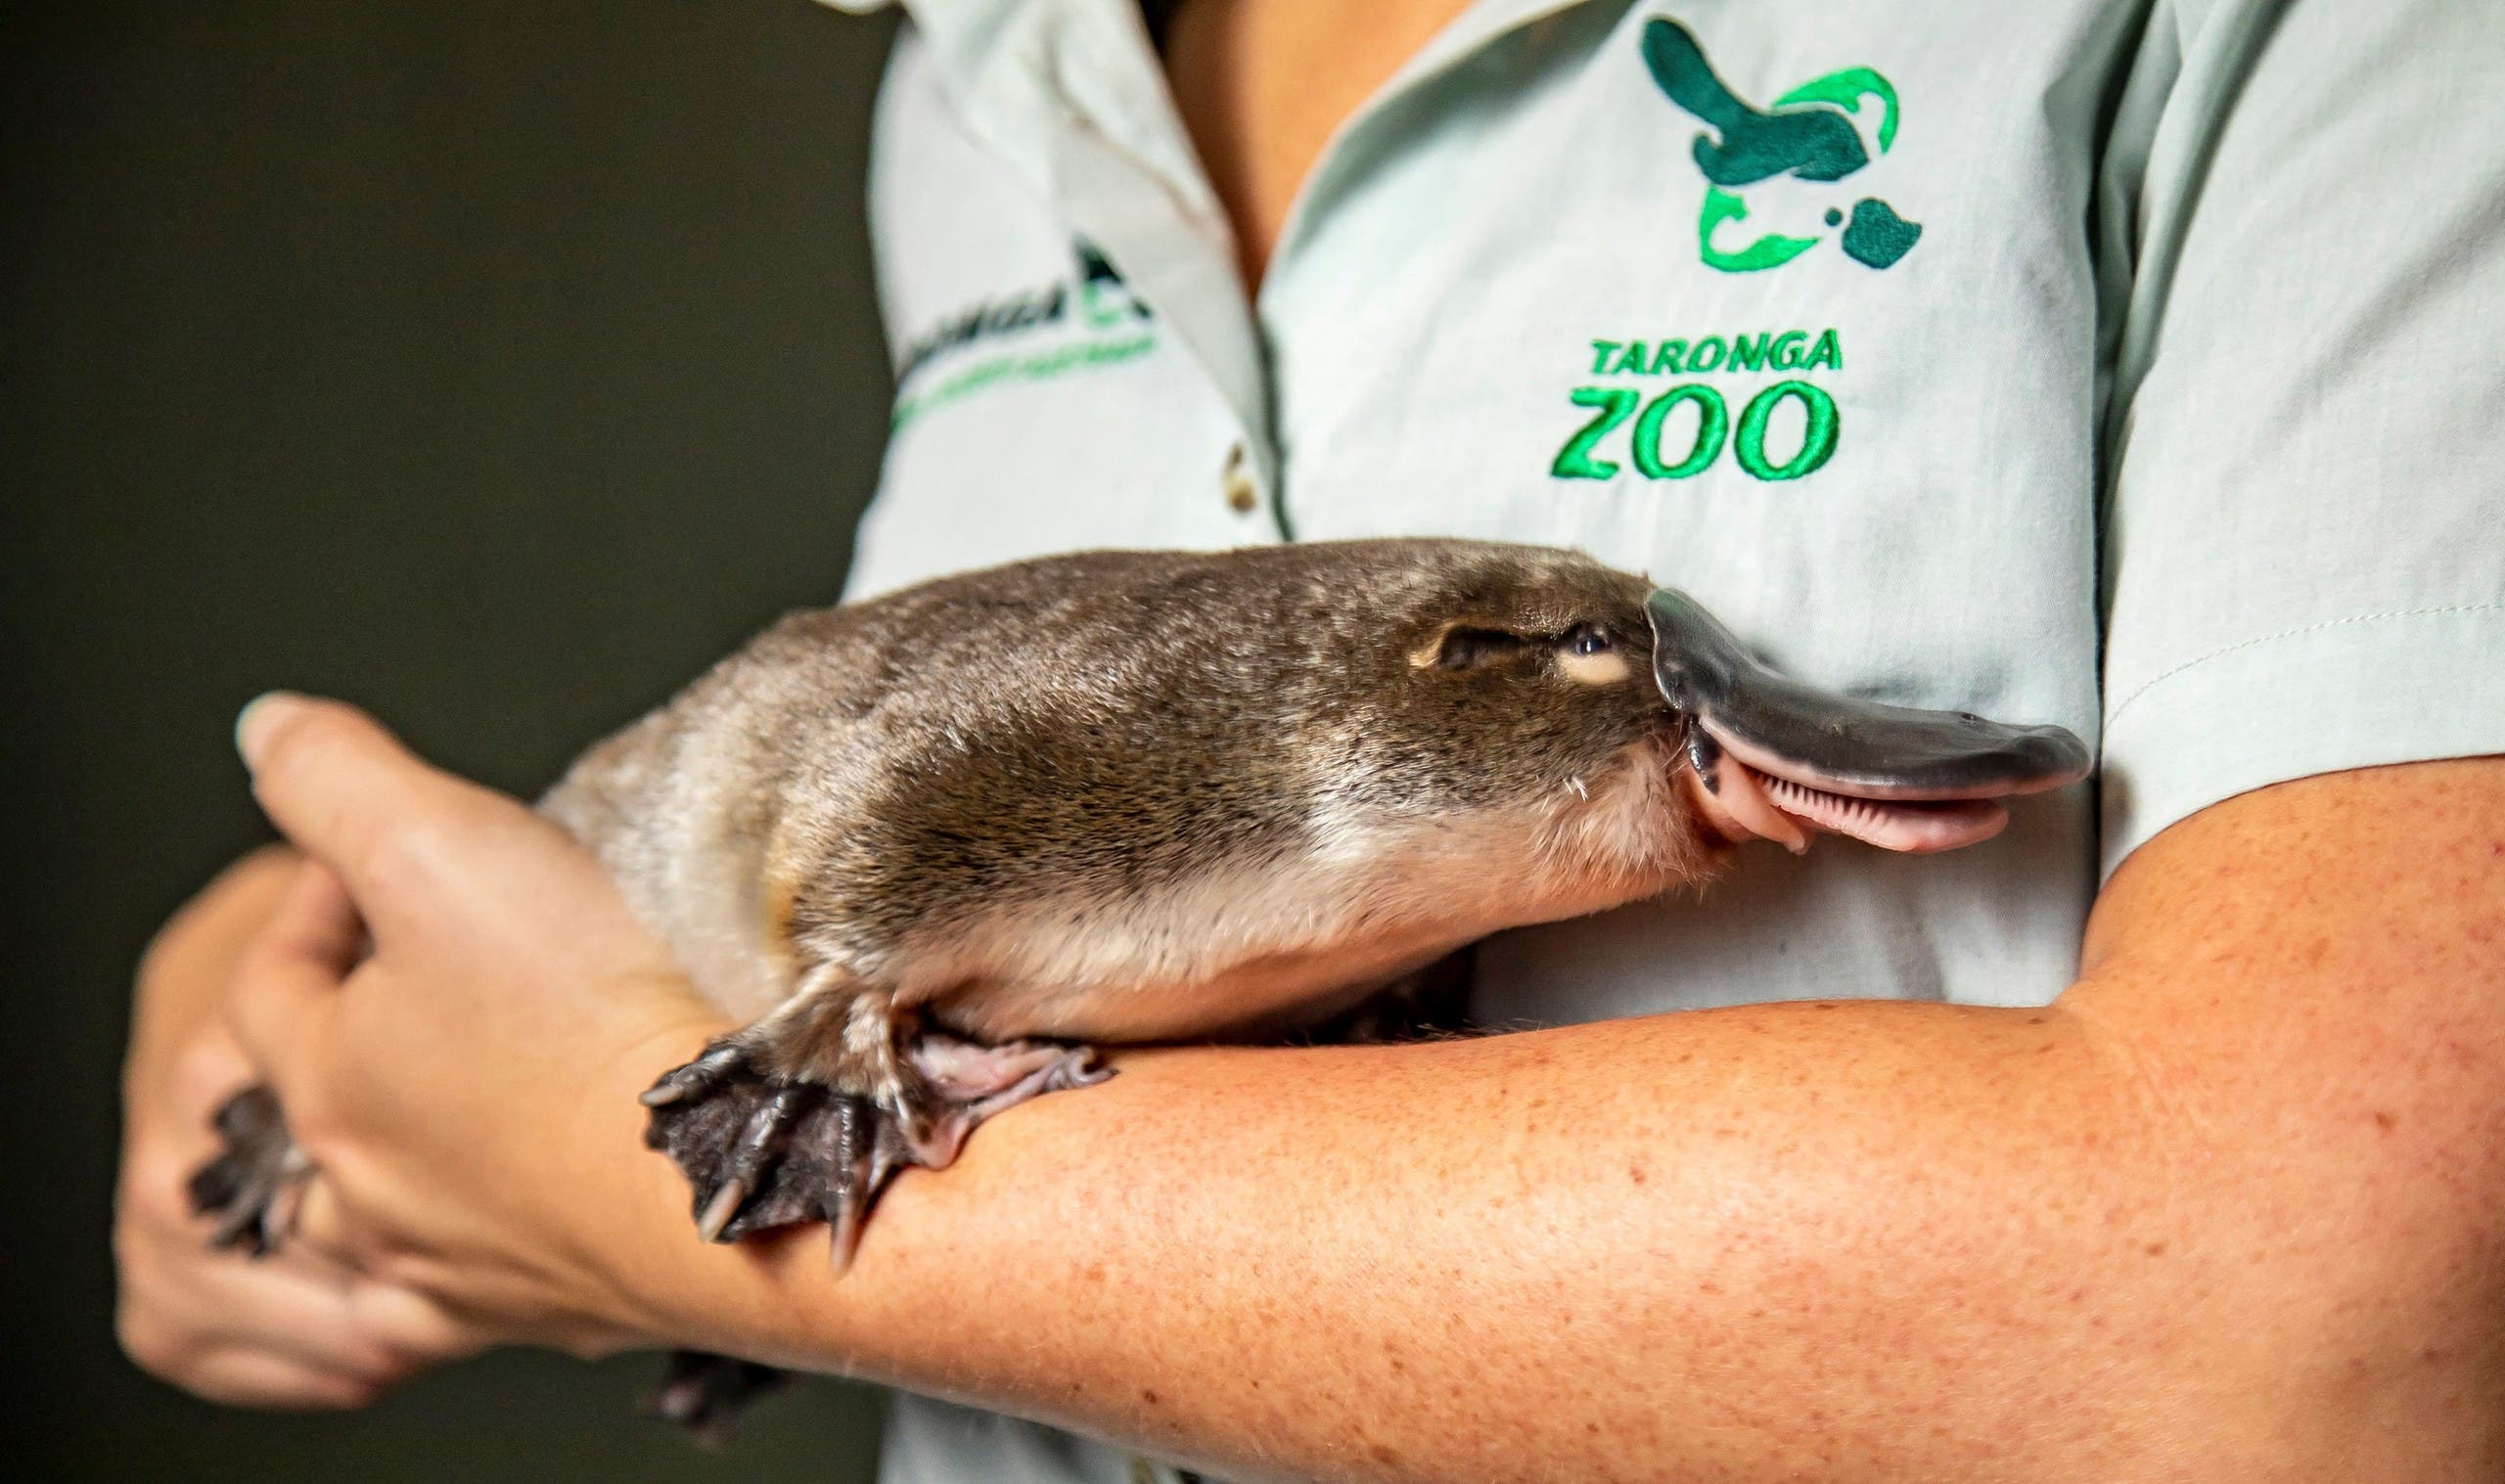 An undated handout photo received from Taronga Zoo on March 4, 2021 shows a platypus held in the arms of a zoo staff member. (File photo: AFP)